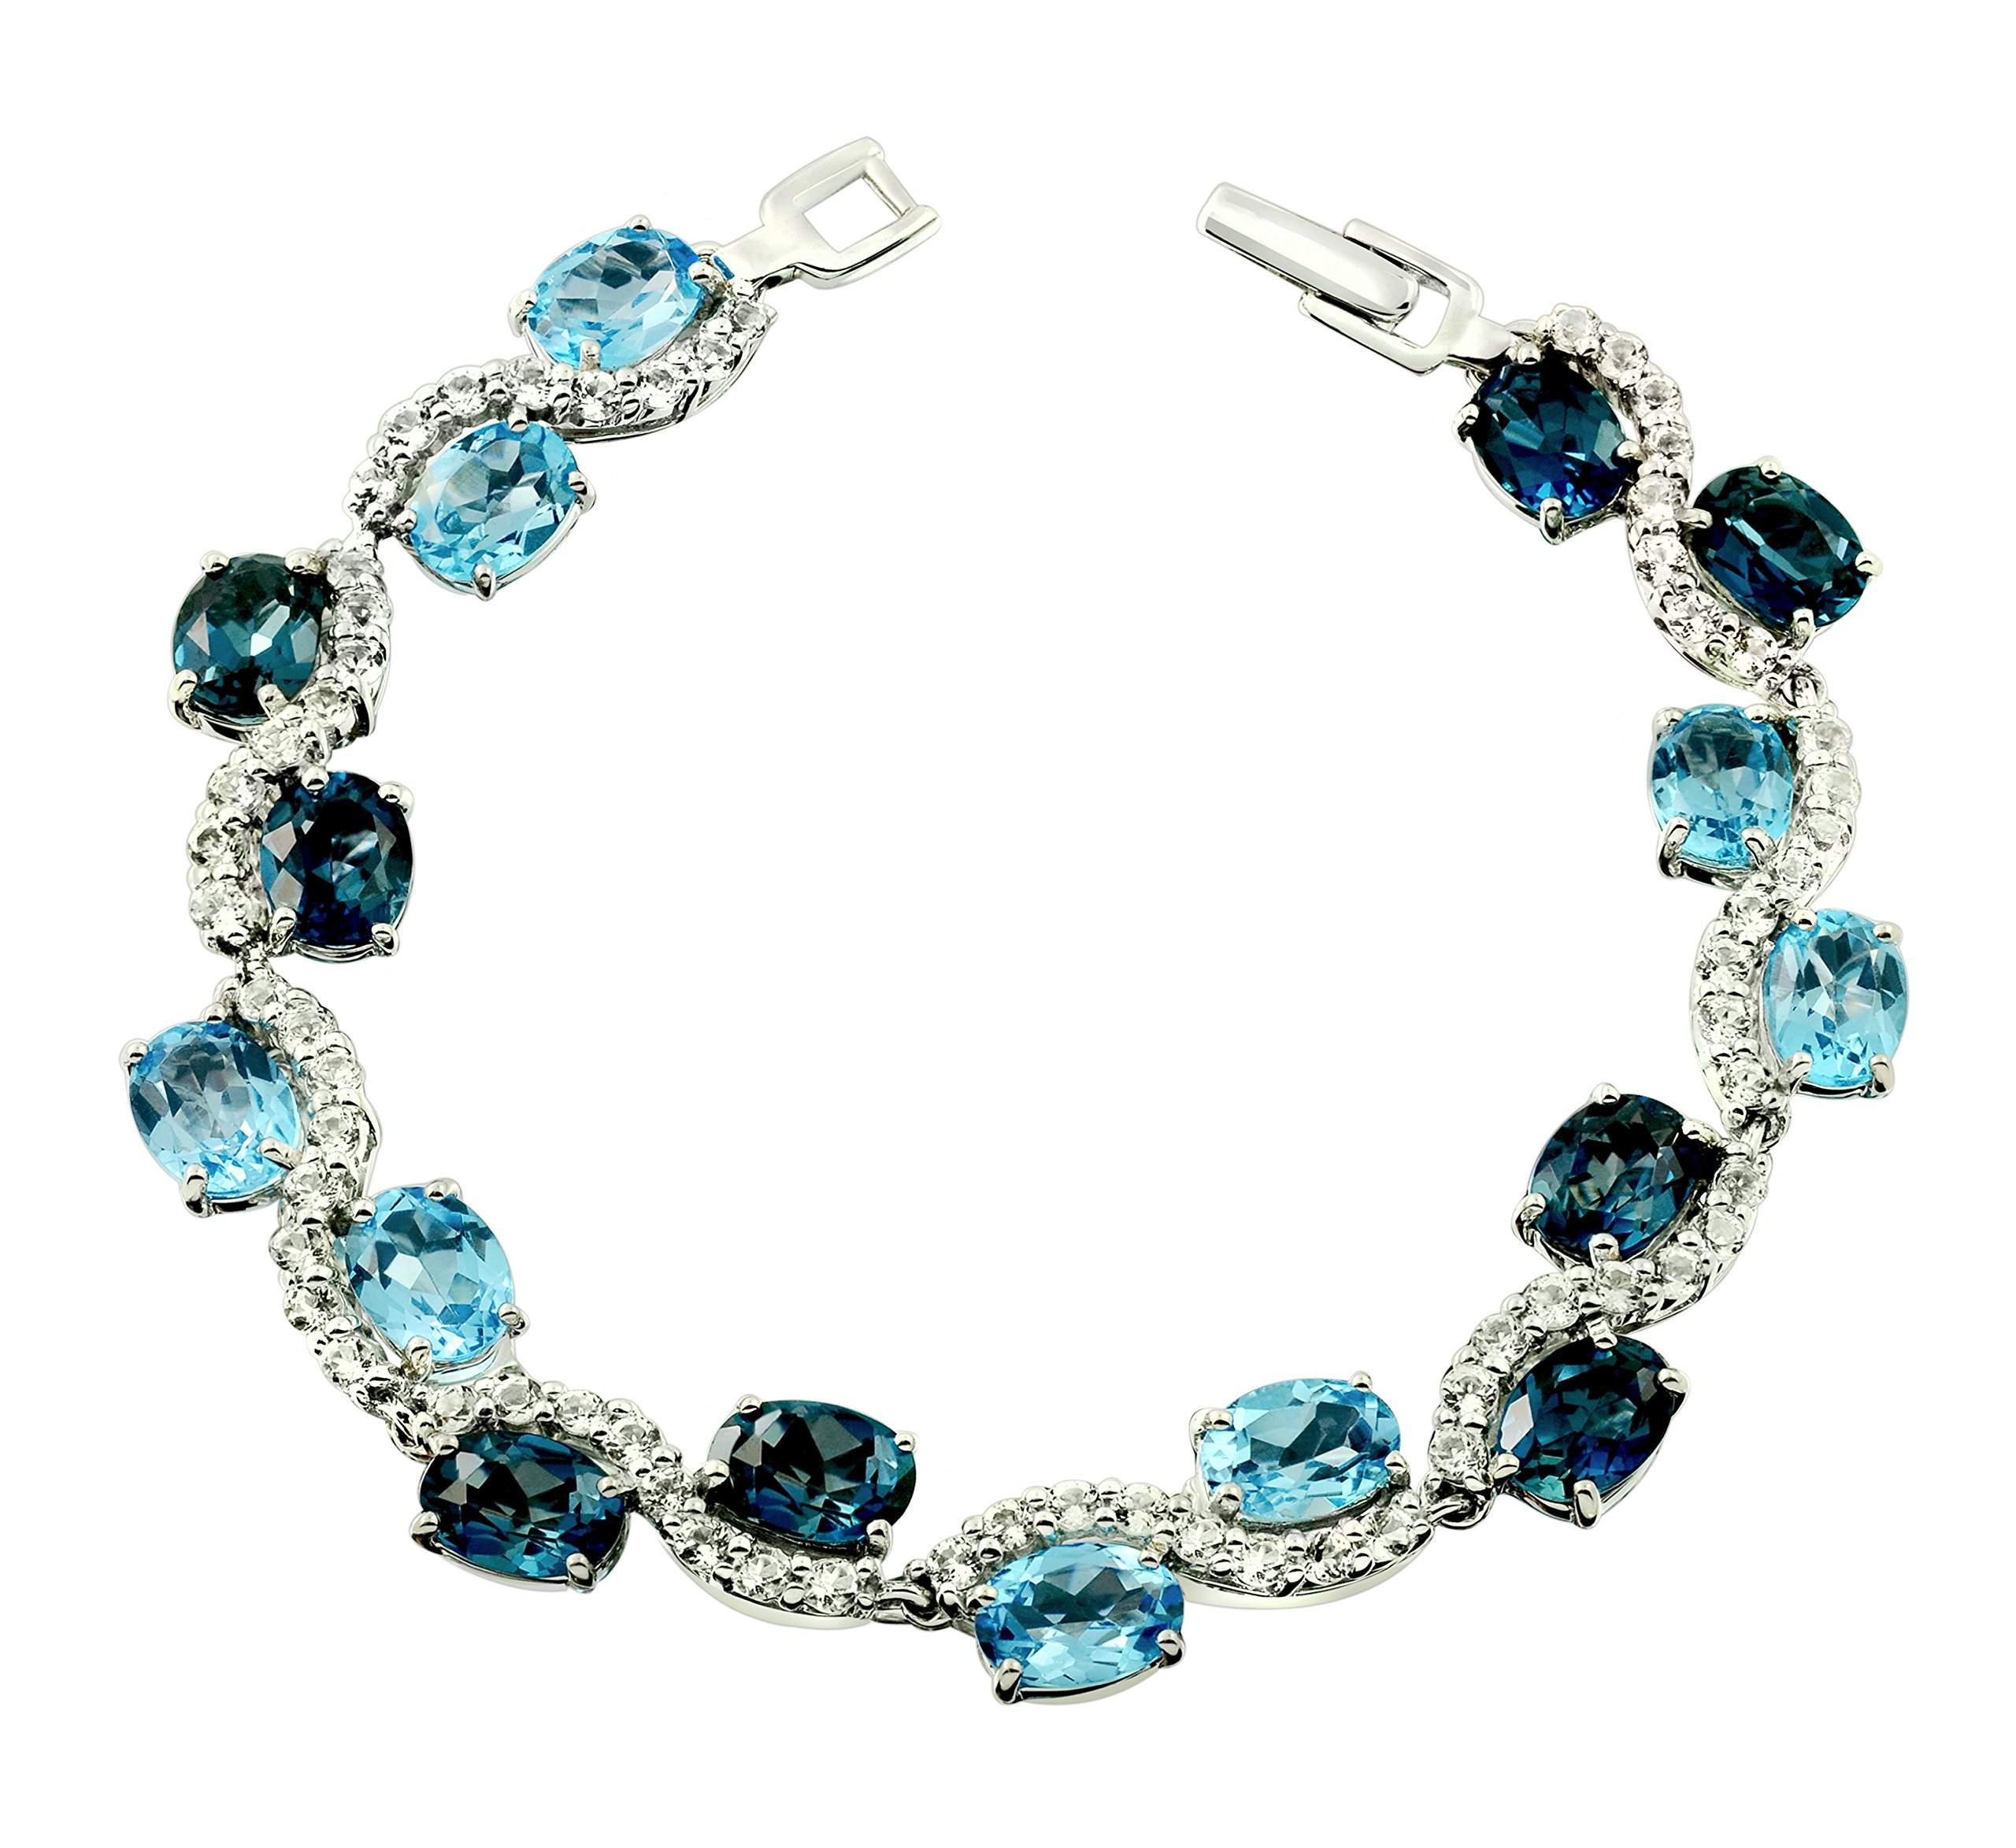 28.32 Carats London Blue Topaz Rhodium-Plated 925 Sterling Silver Statement Bracelet